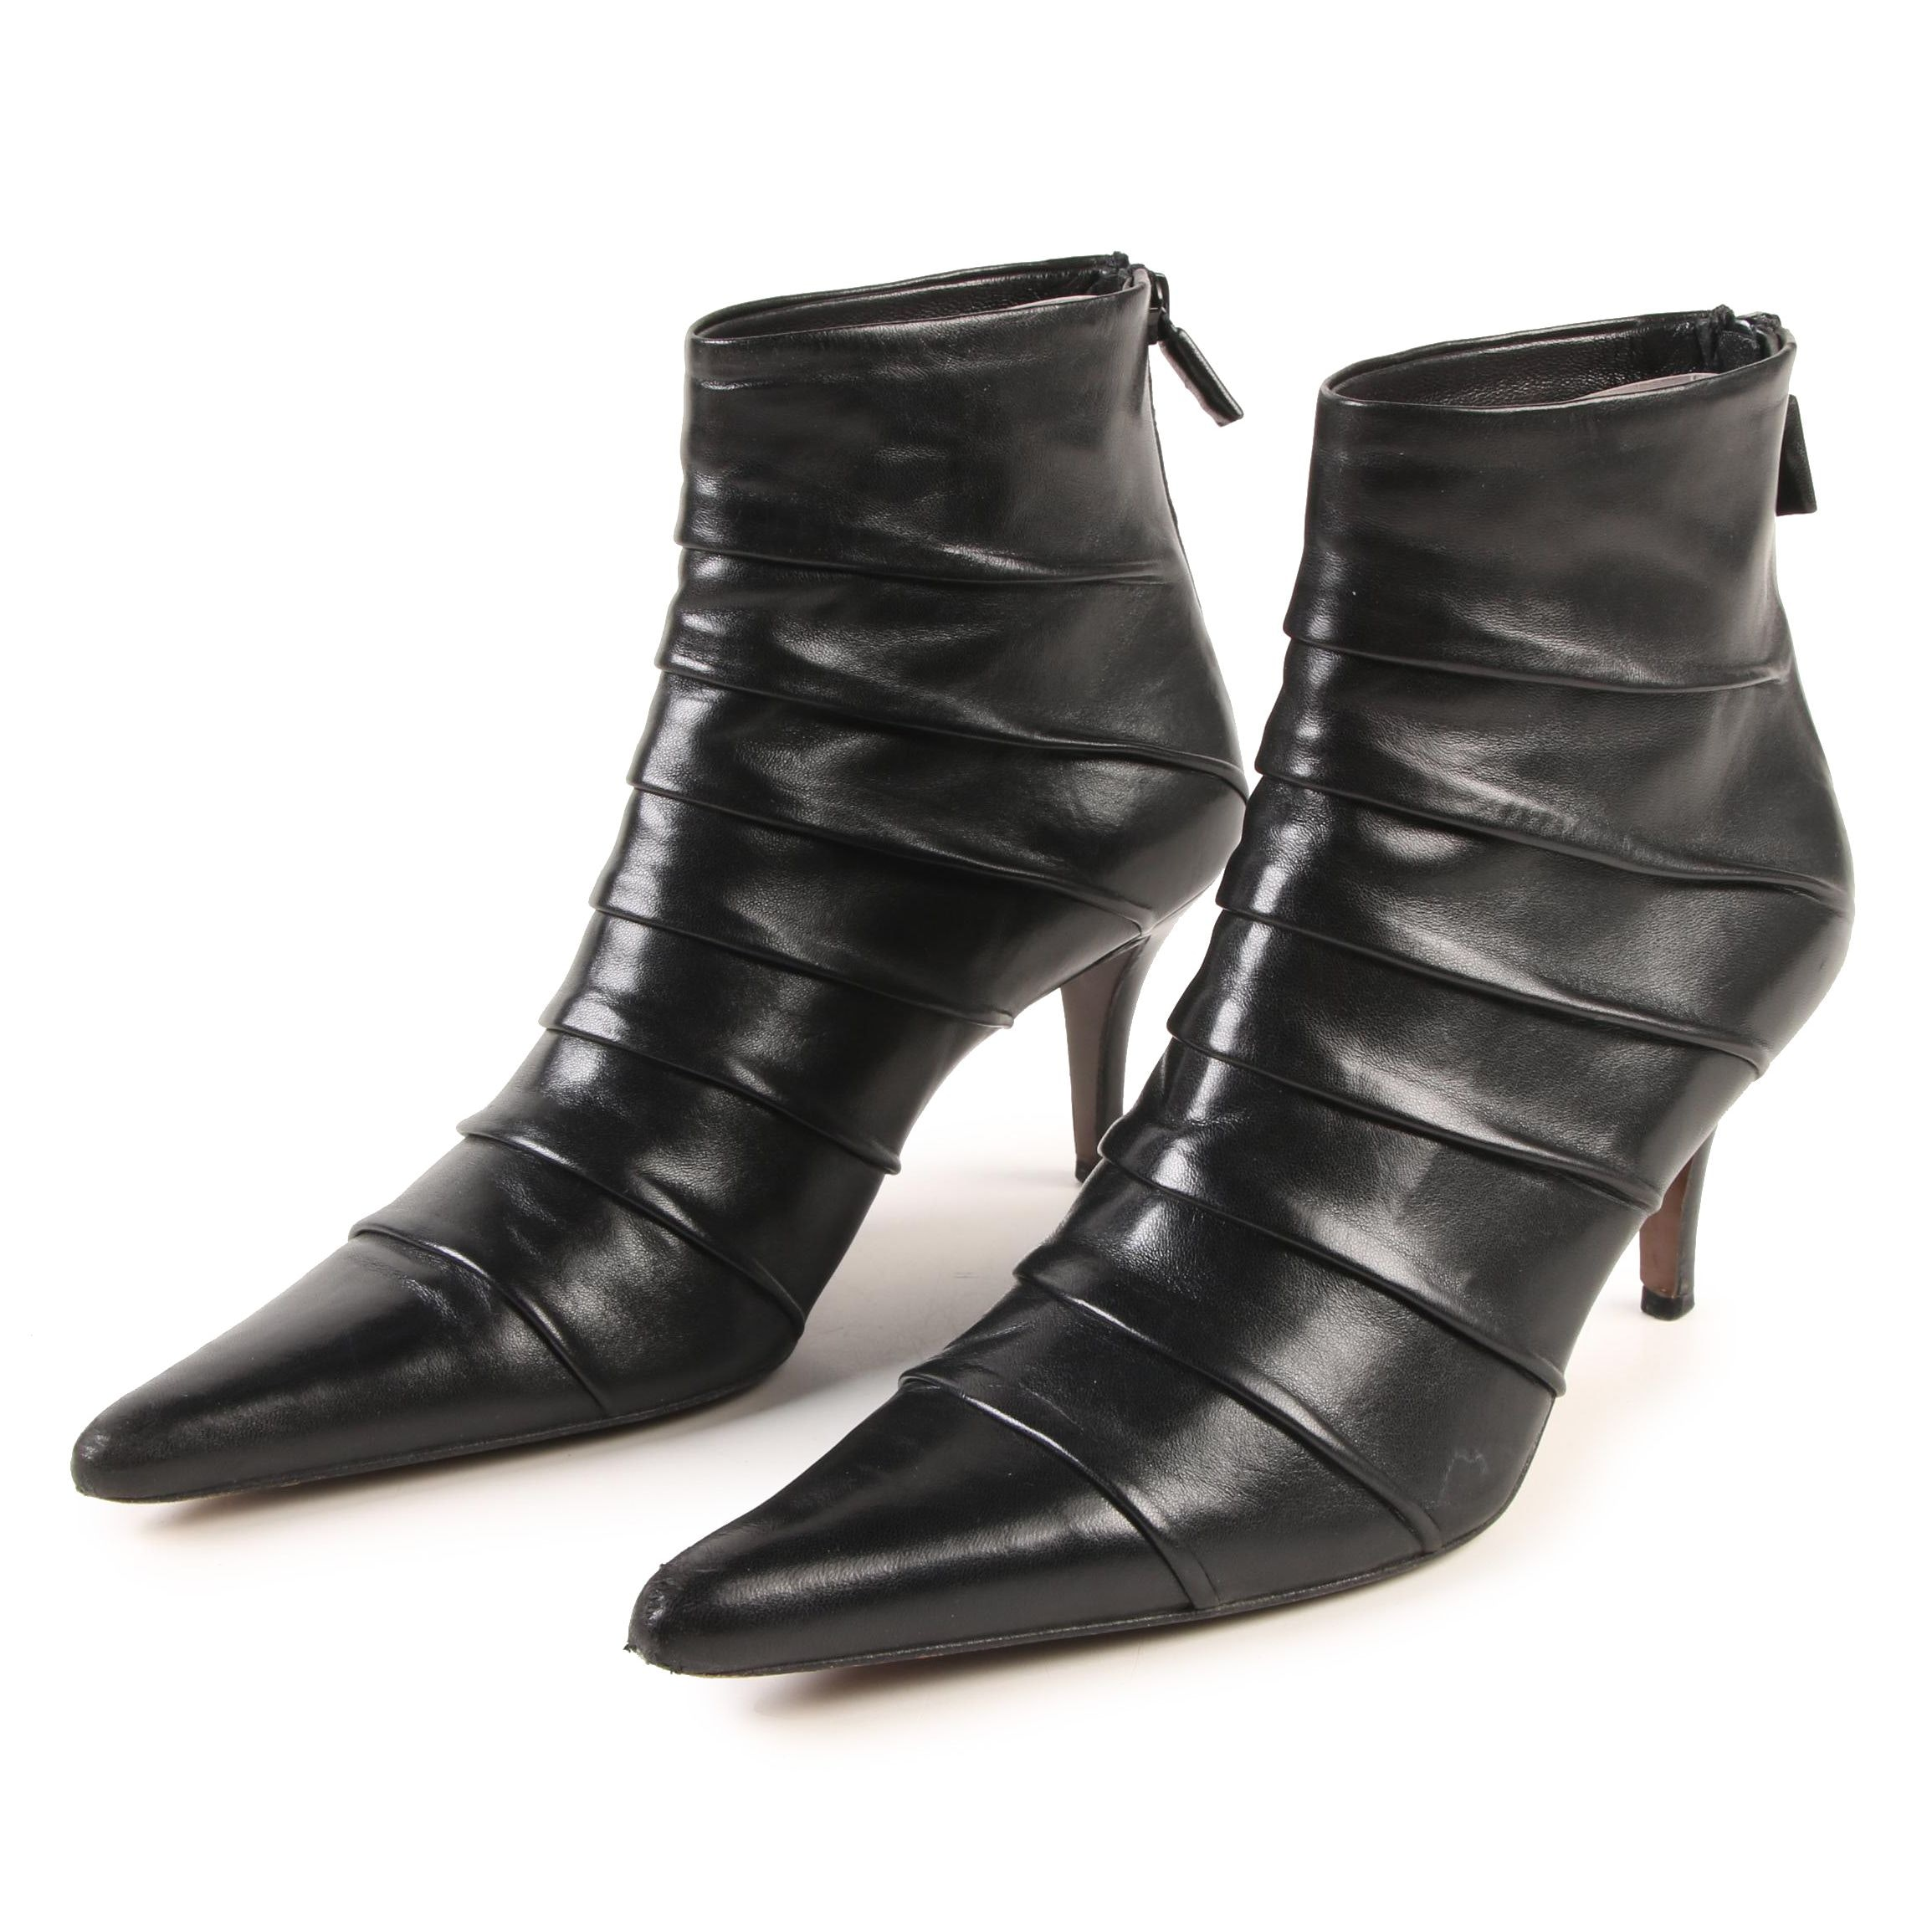 Walter Steiger Pointed Toe Ankle Boots in Black Pleated Nappa Leather